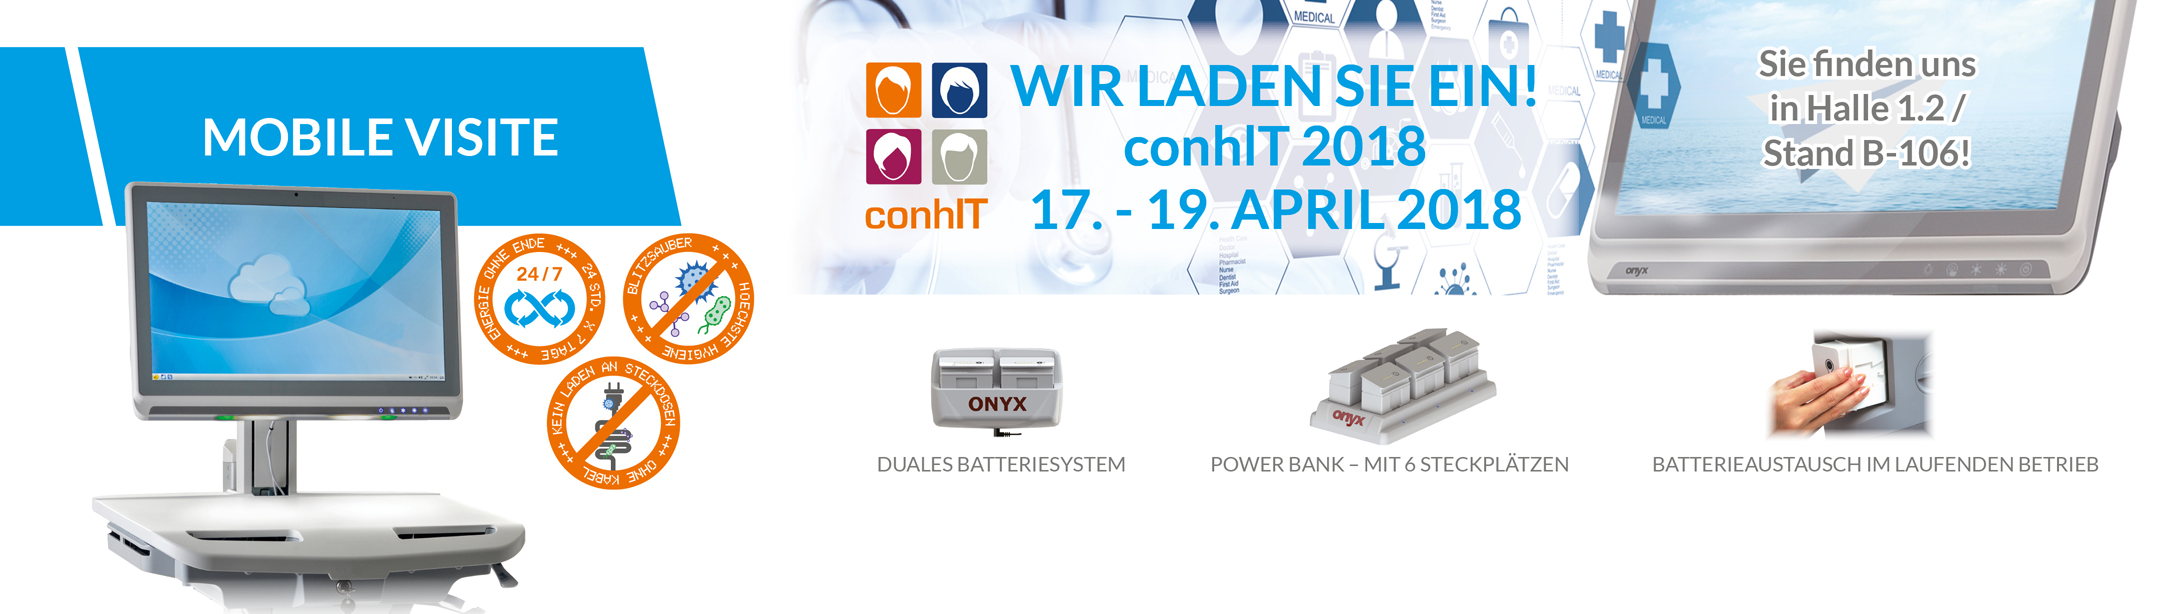 conhIT 2018 | Halle 1.2 Stand B-106!